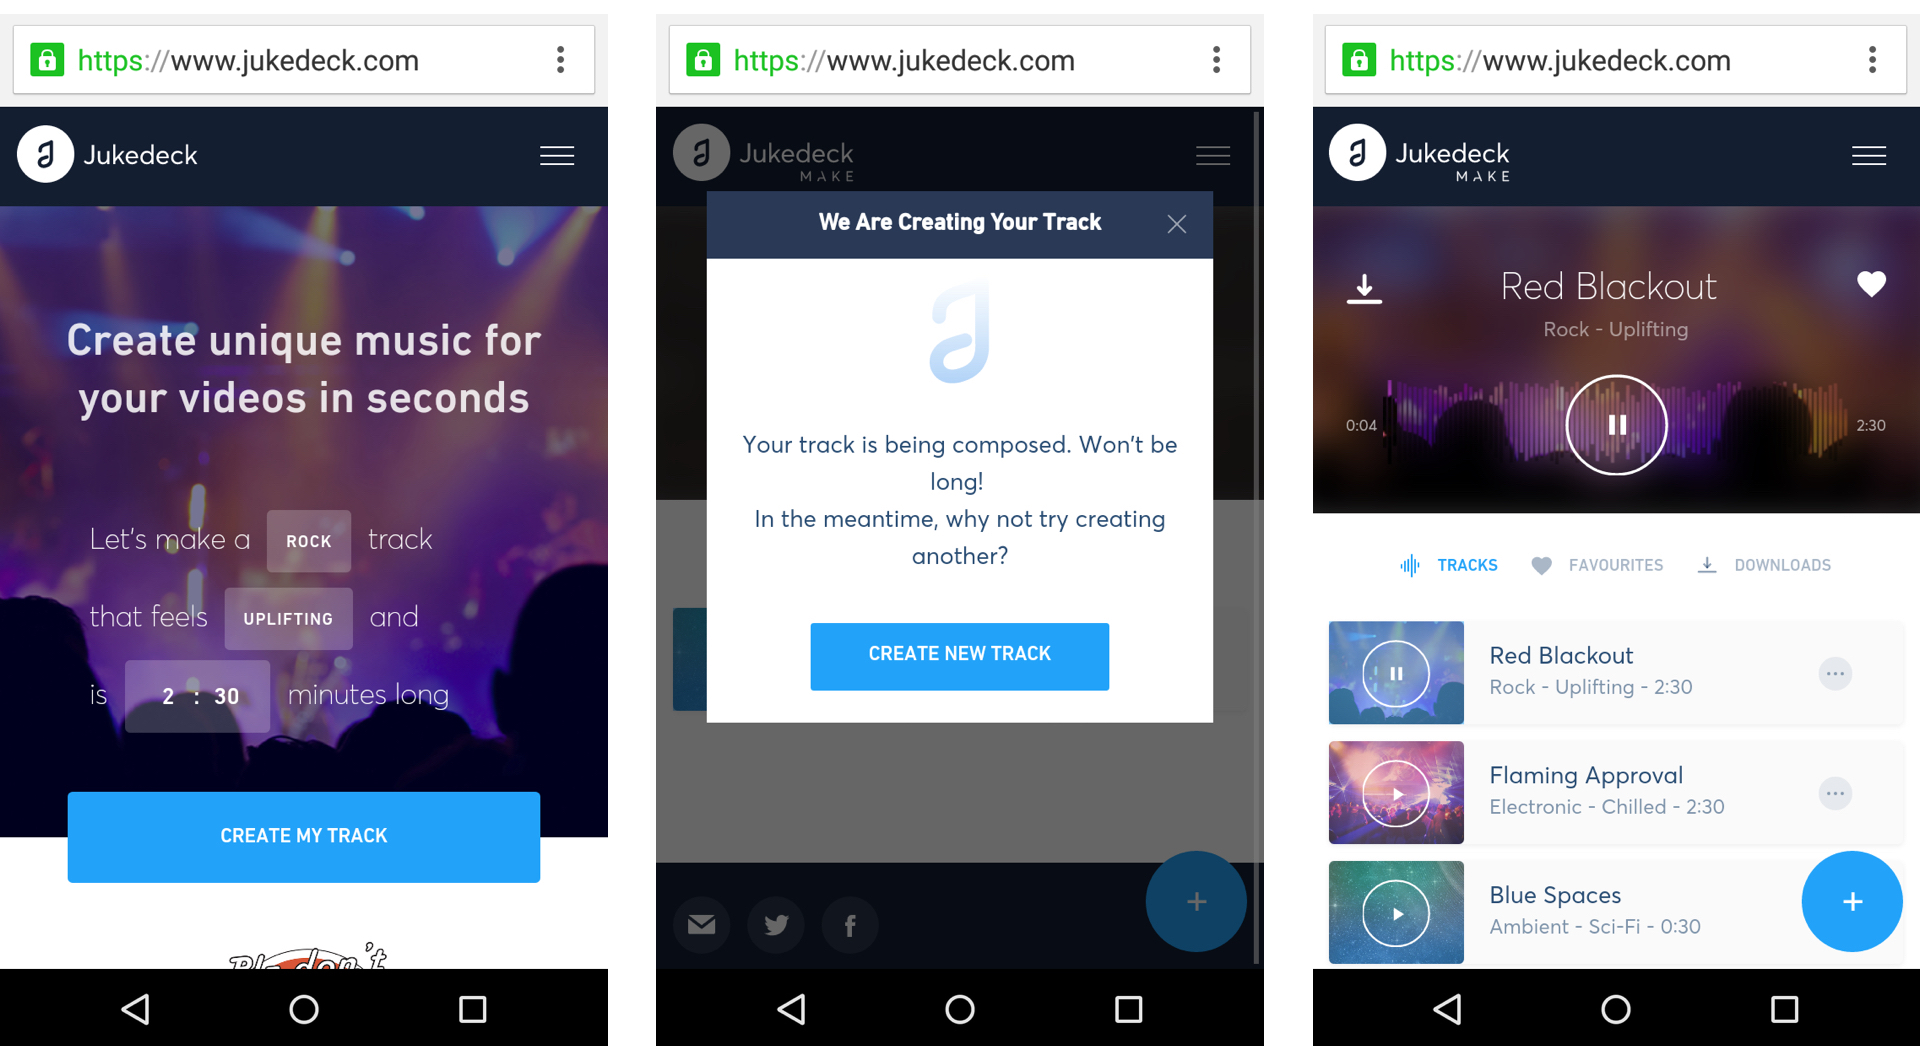 Personalised music in the browser from Jukedeck